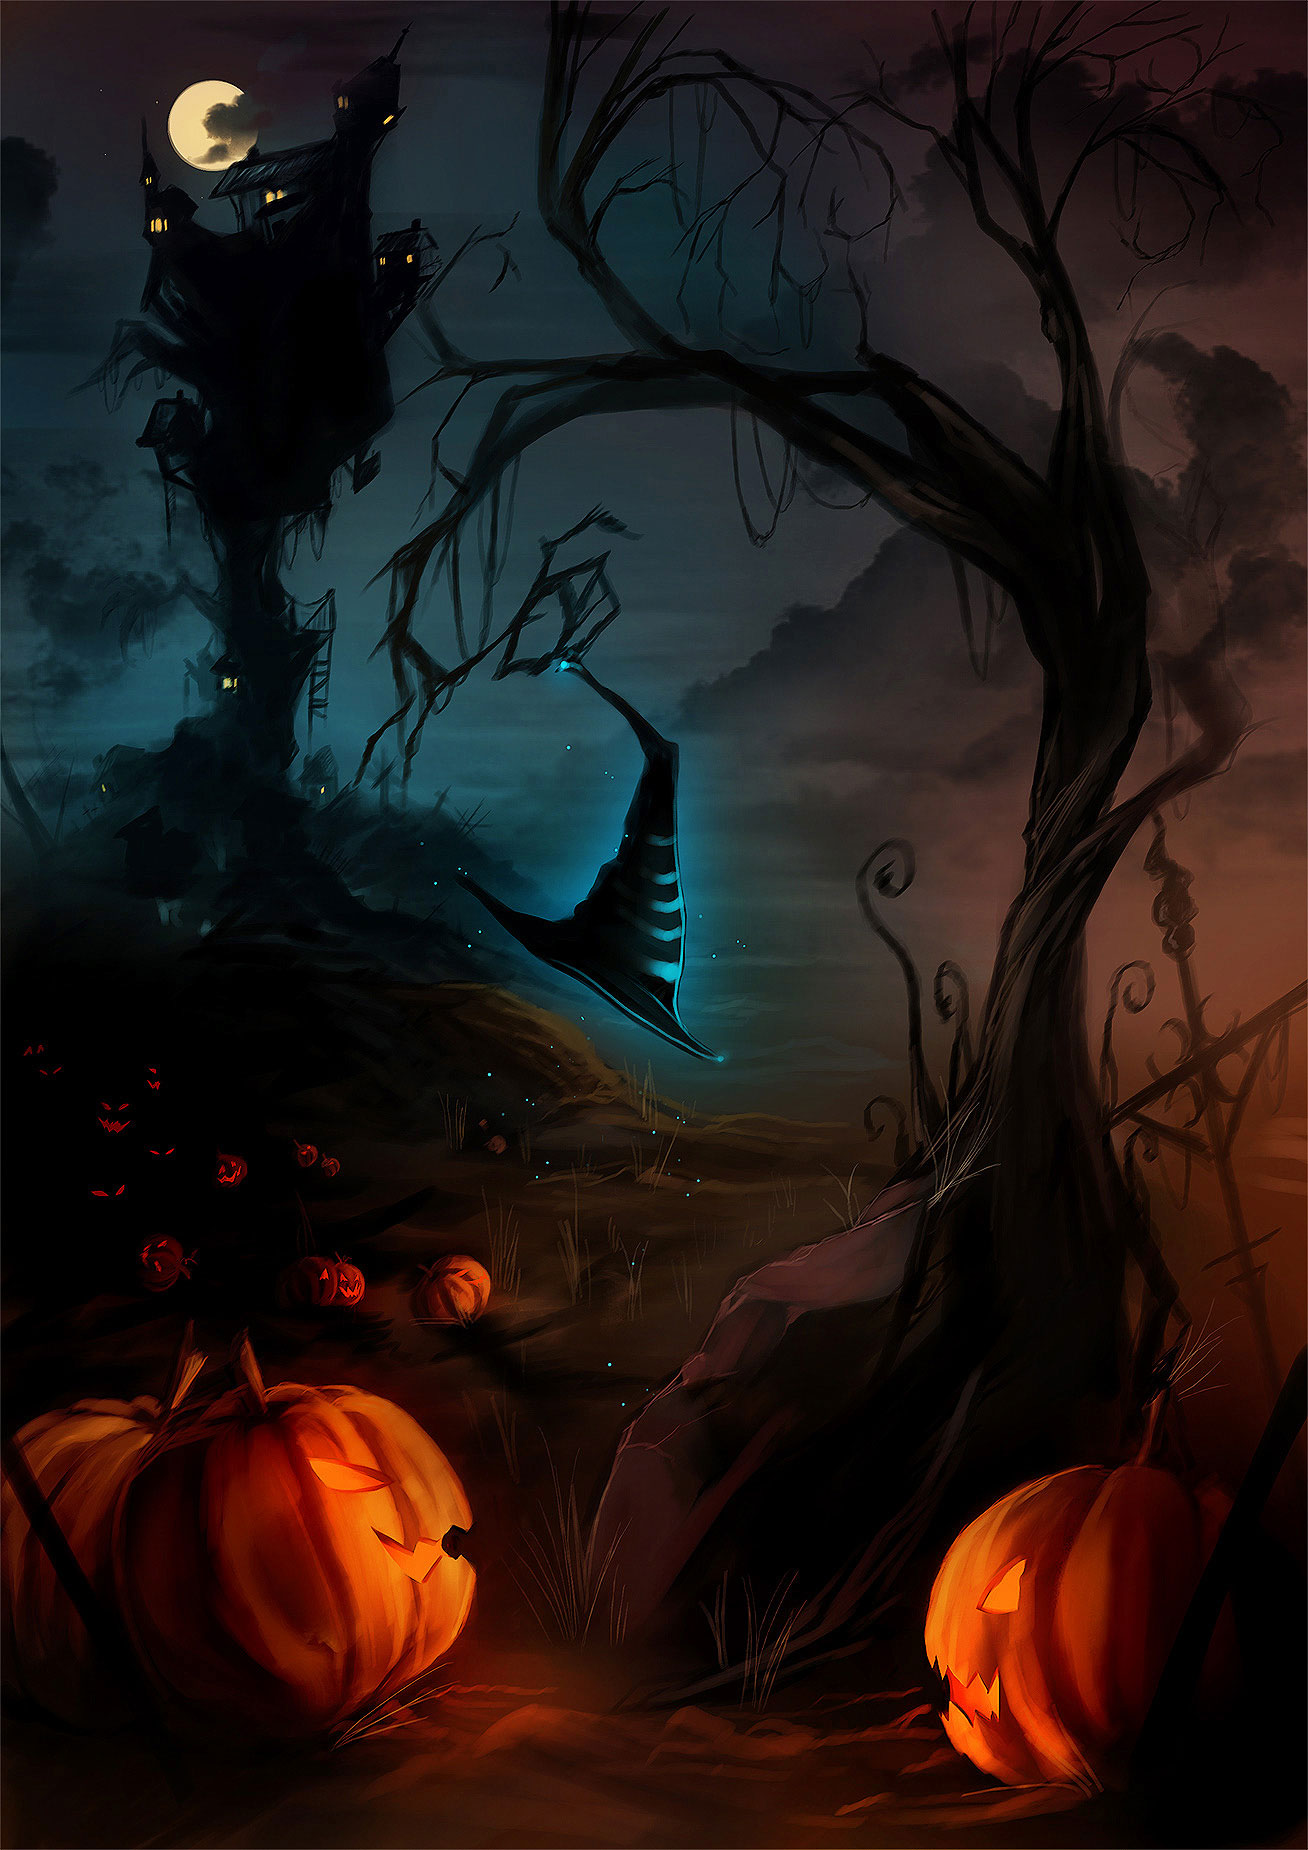 Free Images Person Girl Woman Cute Female Model: Free Halloween 2013 Backgrounds & Wallpapers